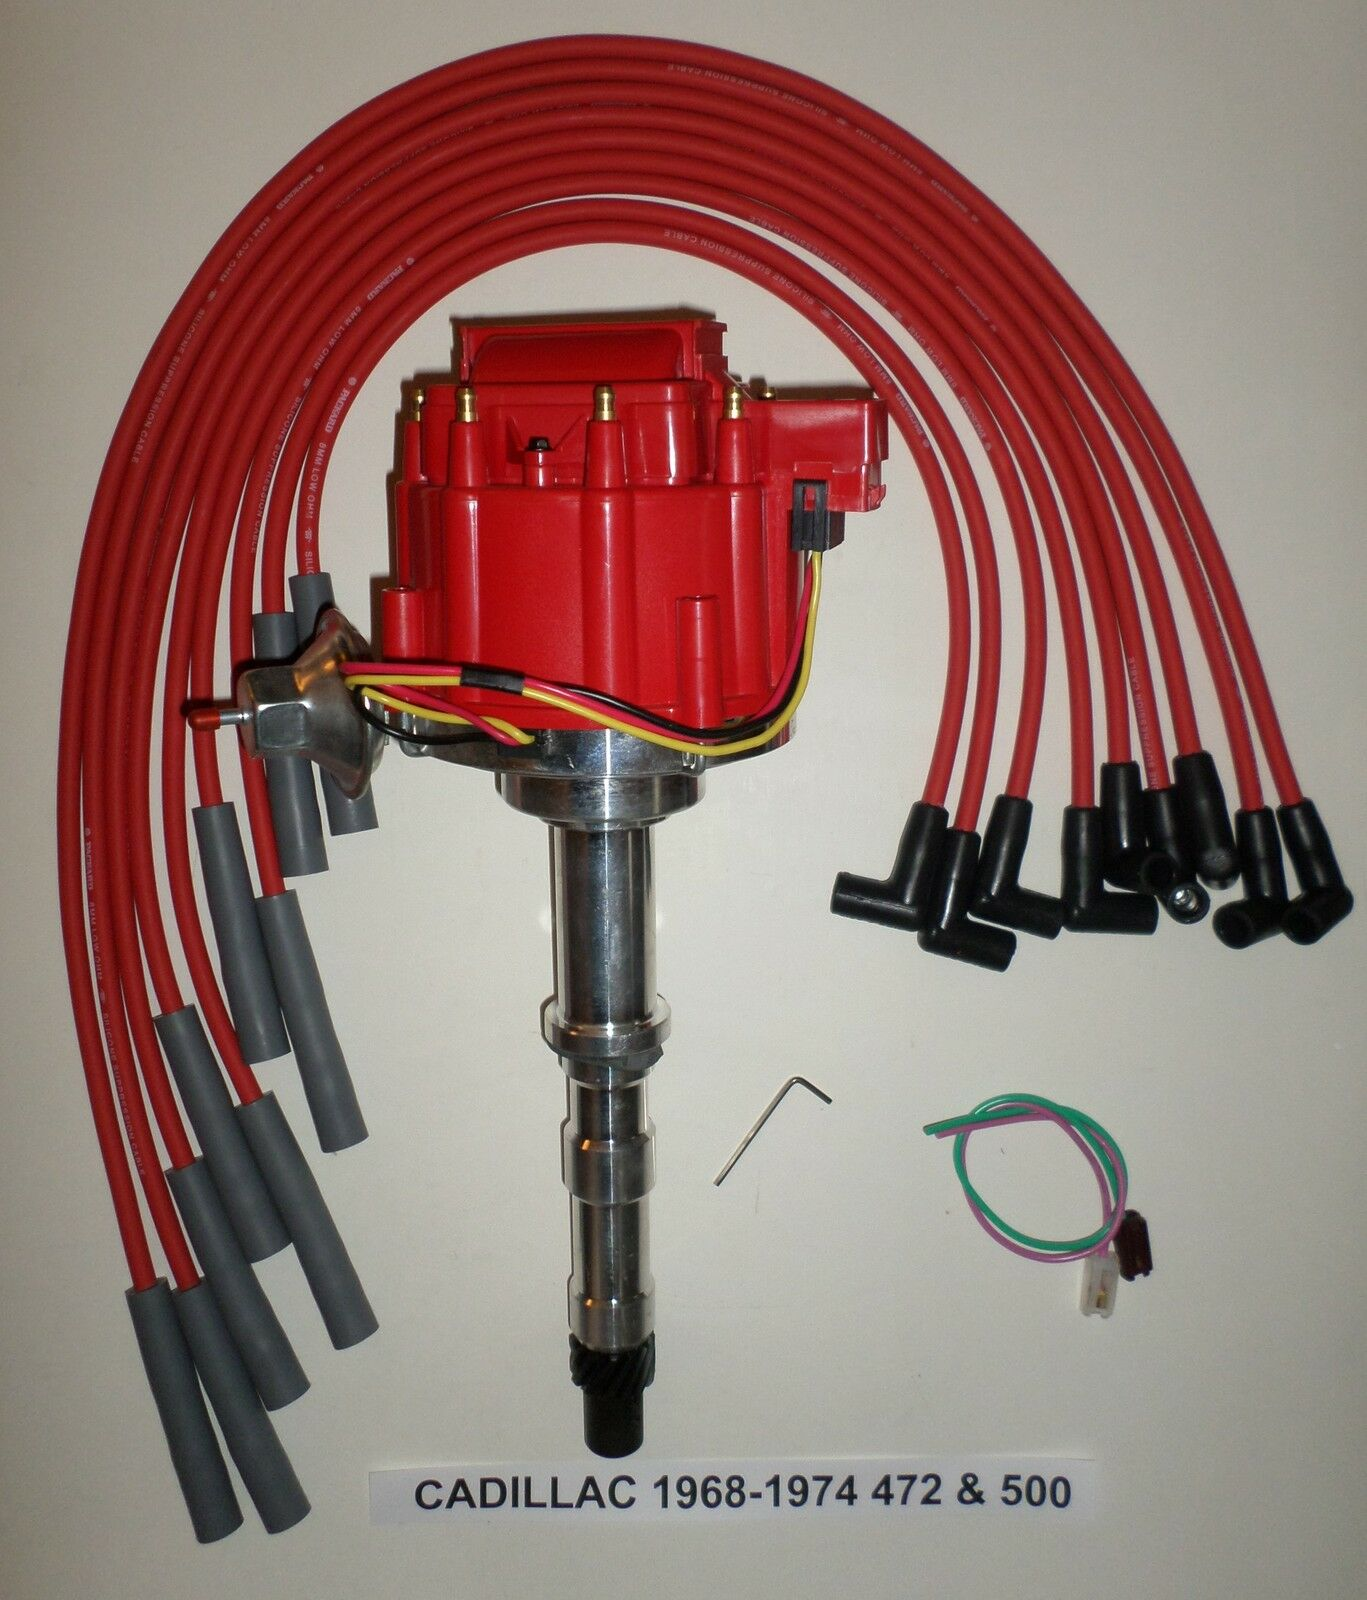 Cadillac 1968 1974 V8 472 500 Hei Red Distributor 8mm Spark Gm Small Cap Wiring 1 Of 2free Shipping